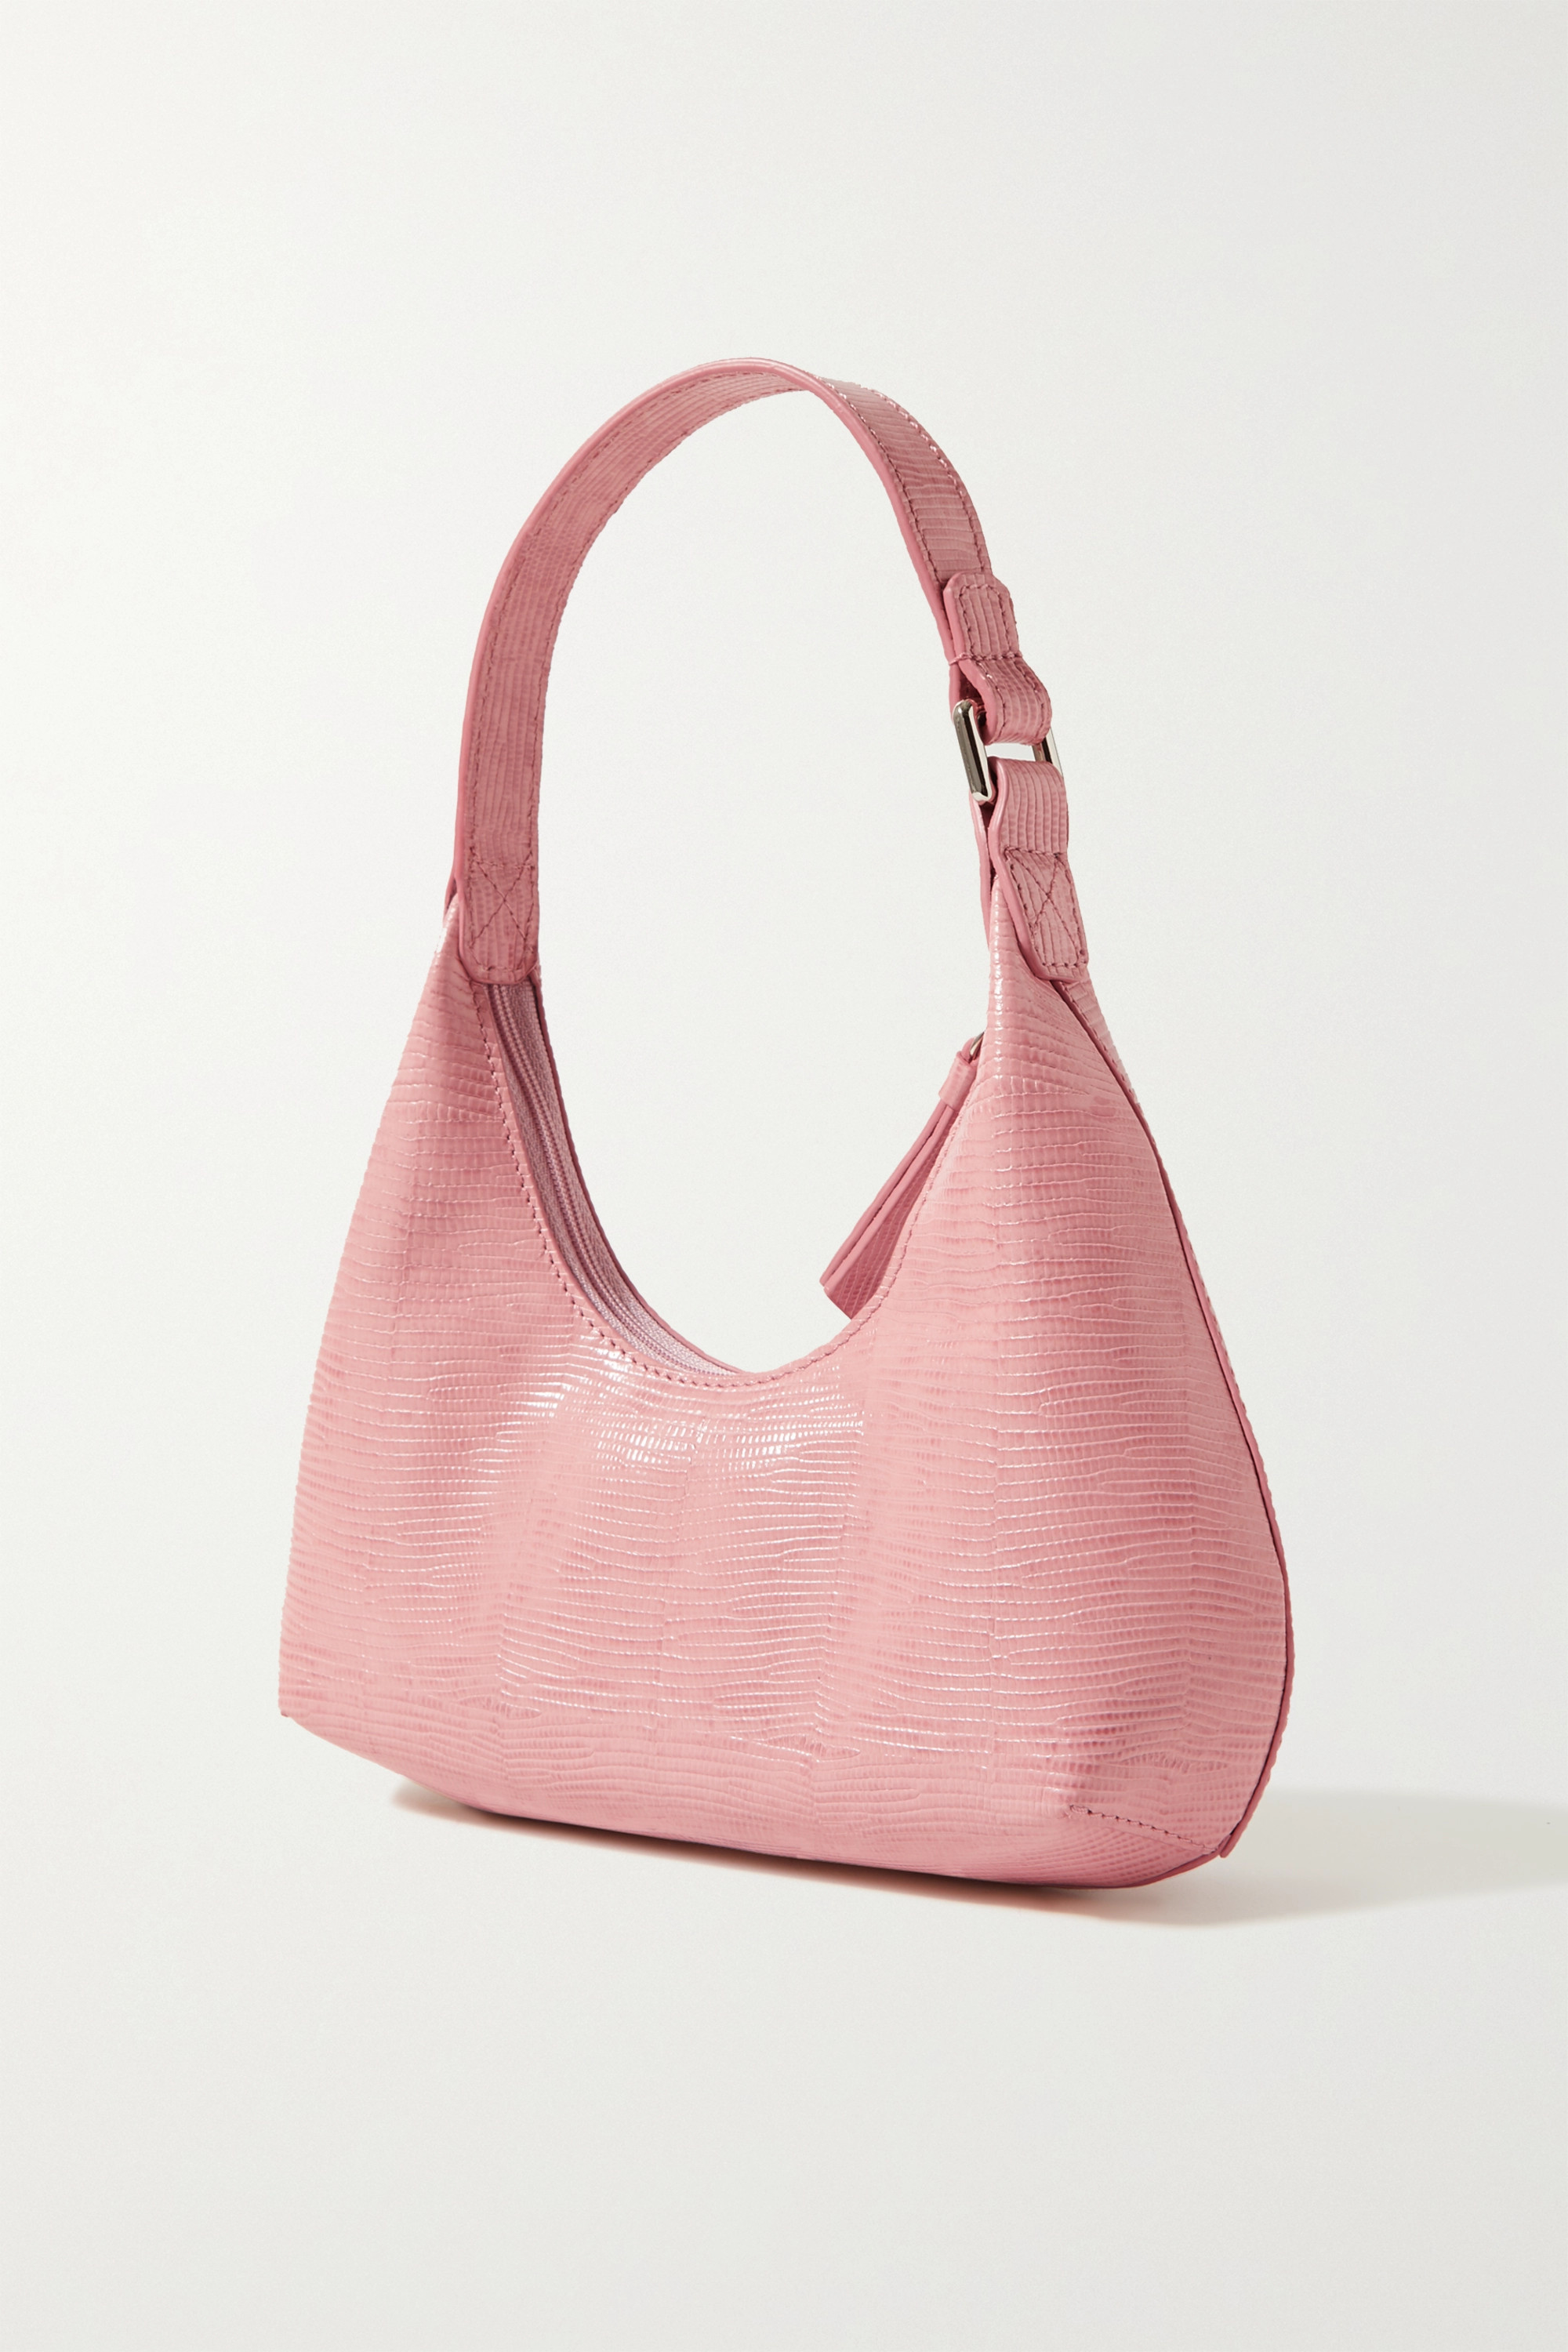 BY FAR Amber Baby lizard-effect leather tote